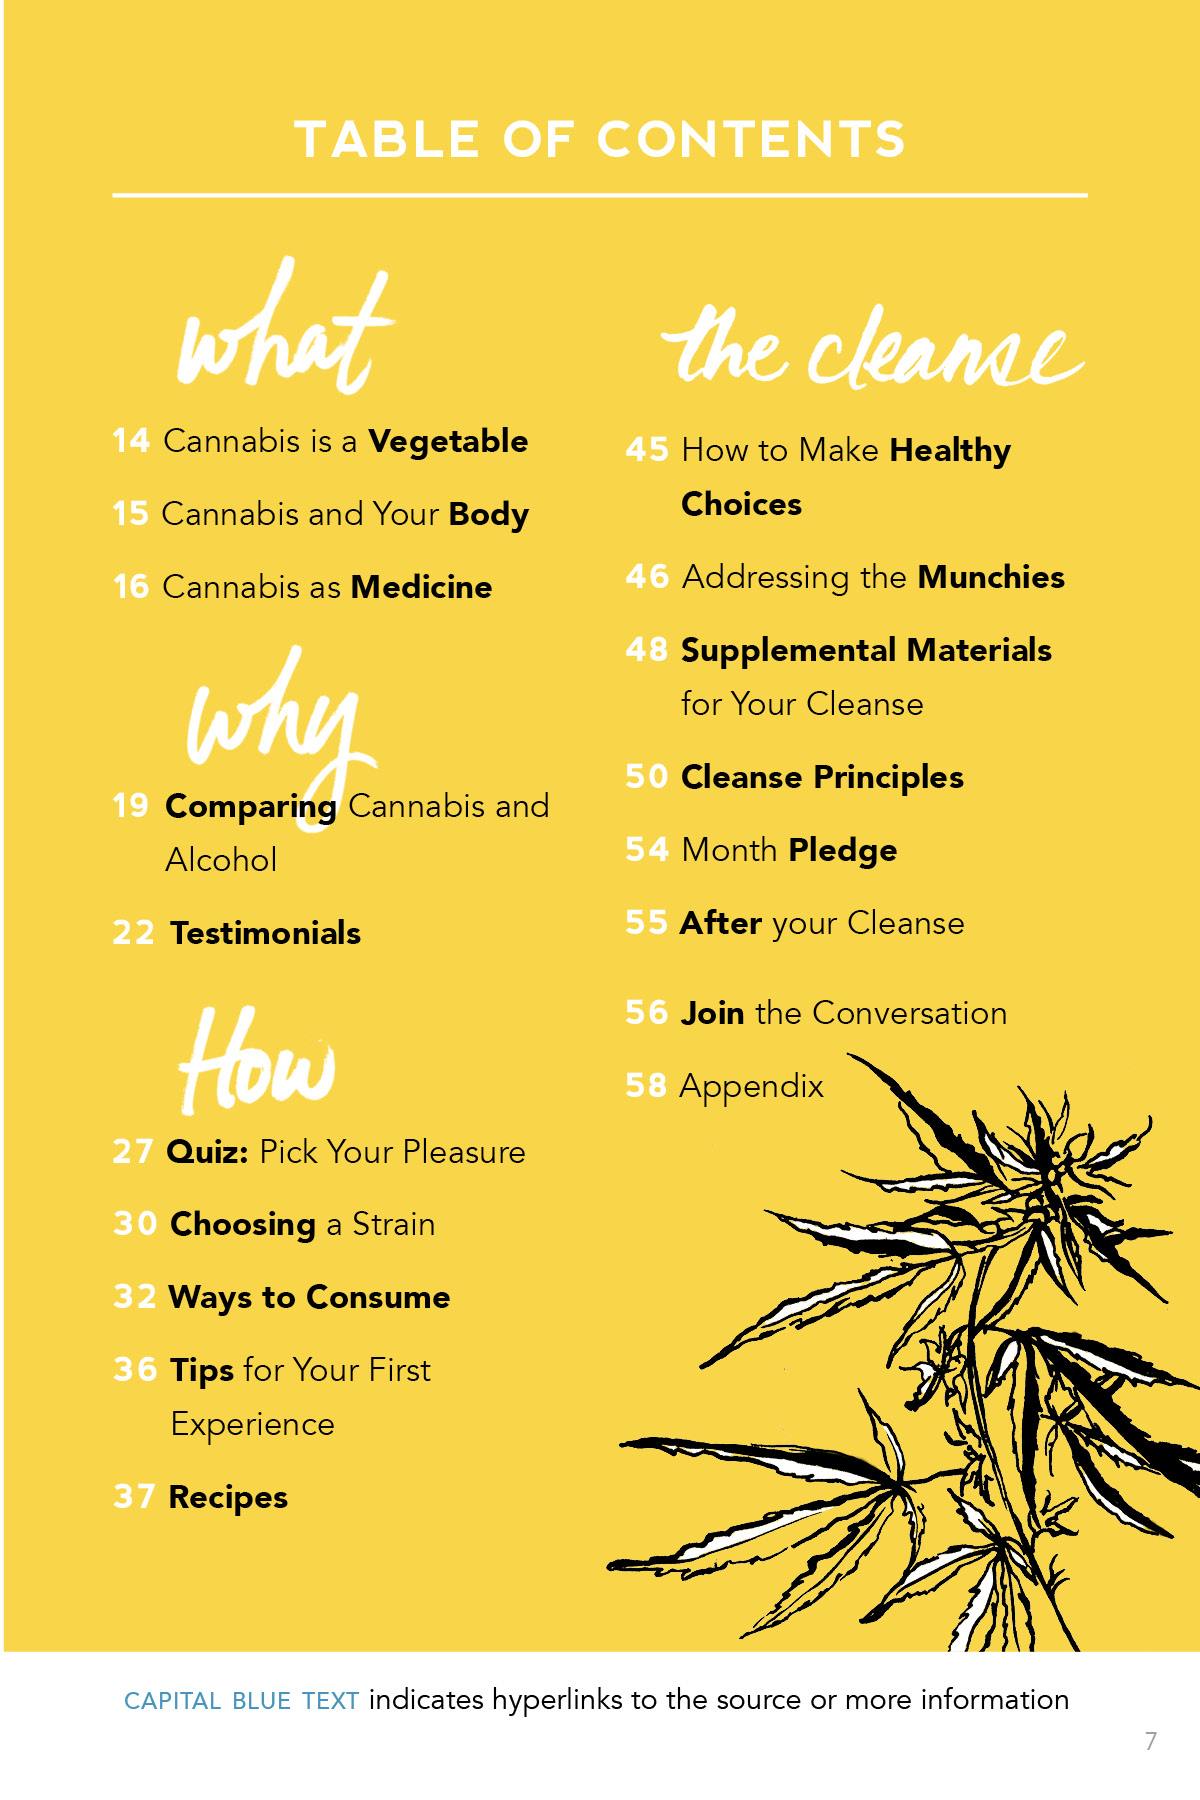 CannabisCleanse-pagesasimages7.jpg